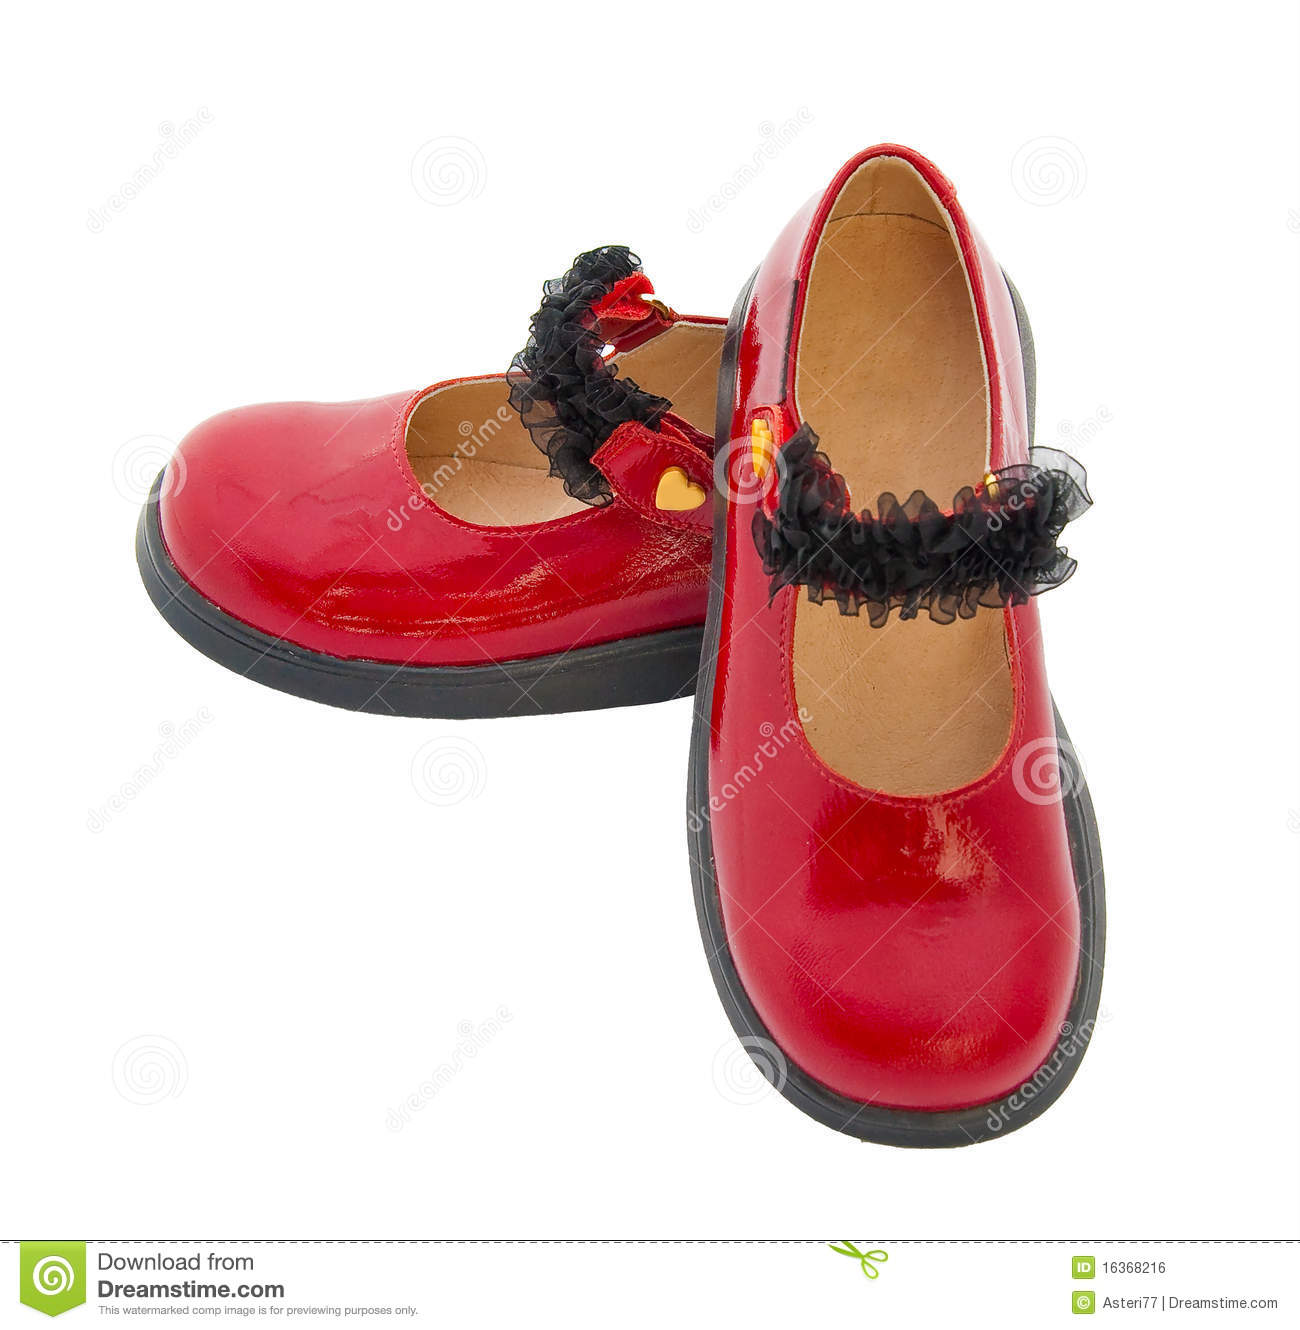 Red Patent Leather Baby Shoes Royalty Free Stock Image